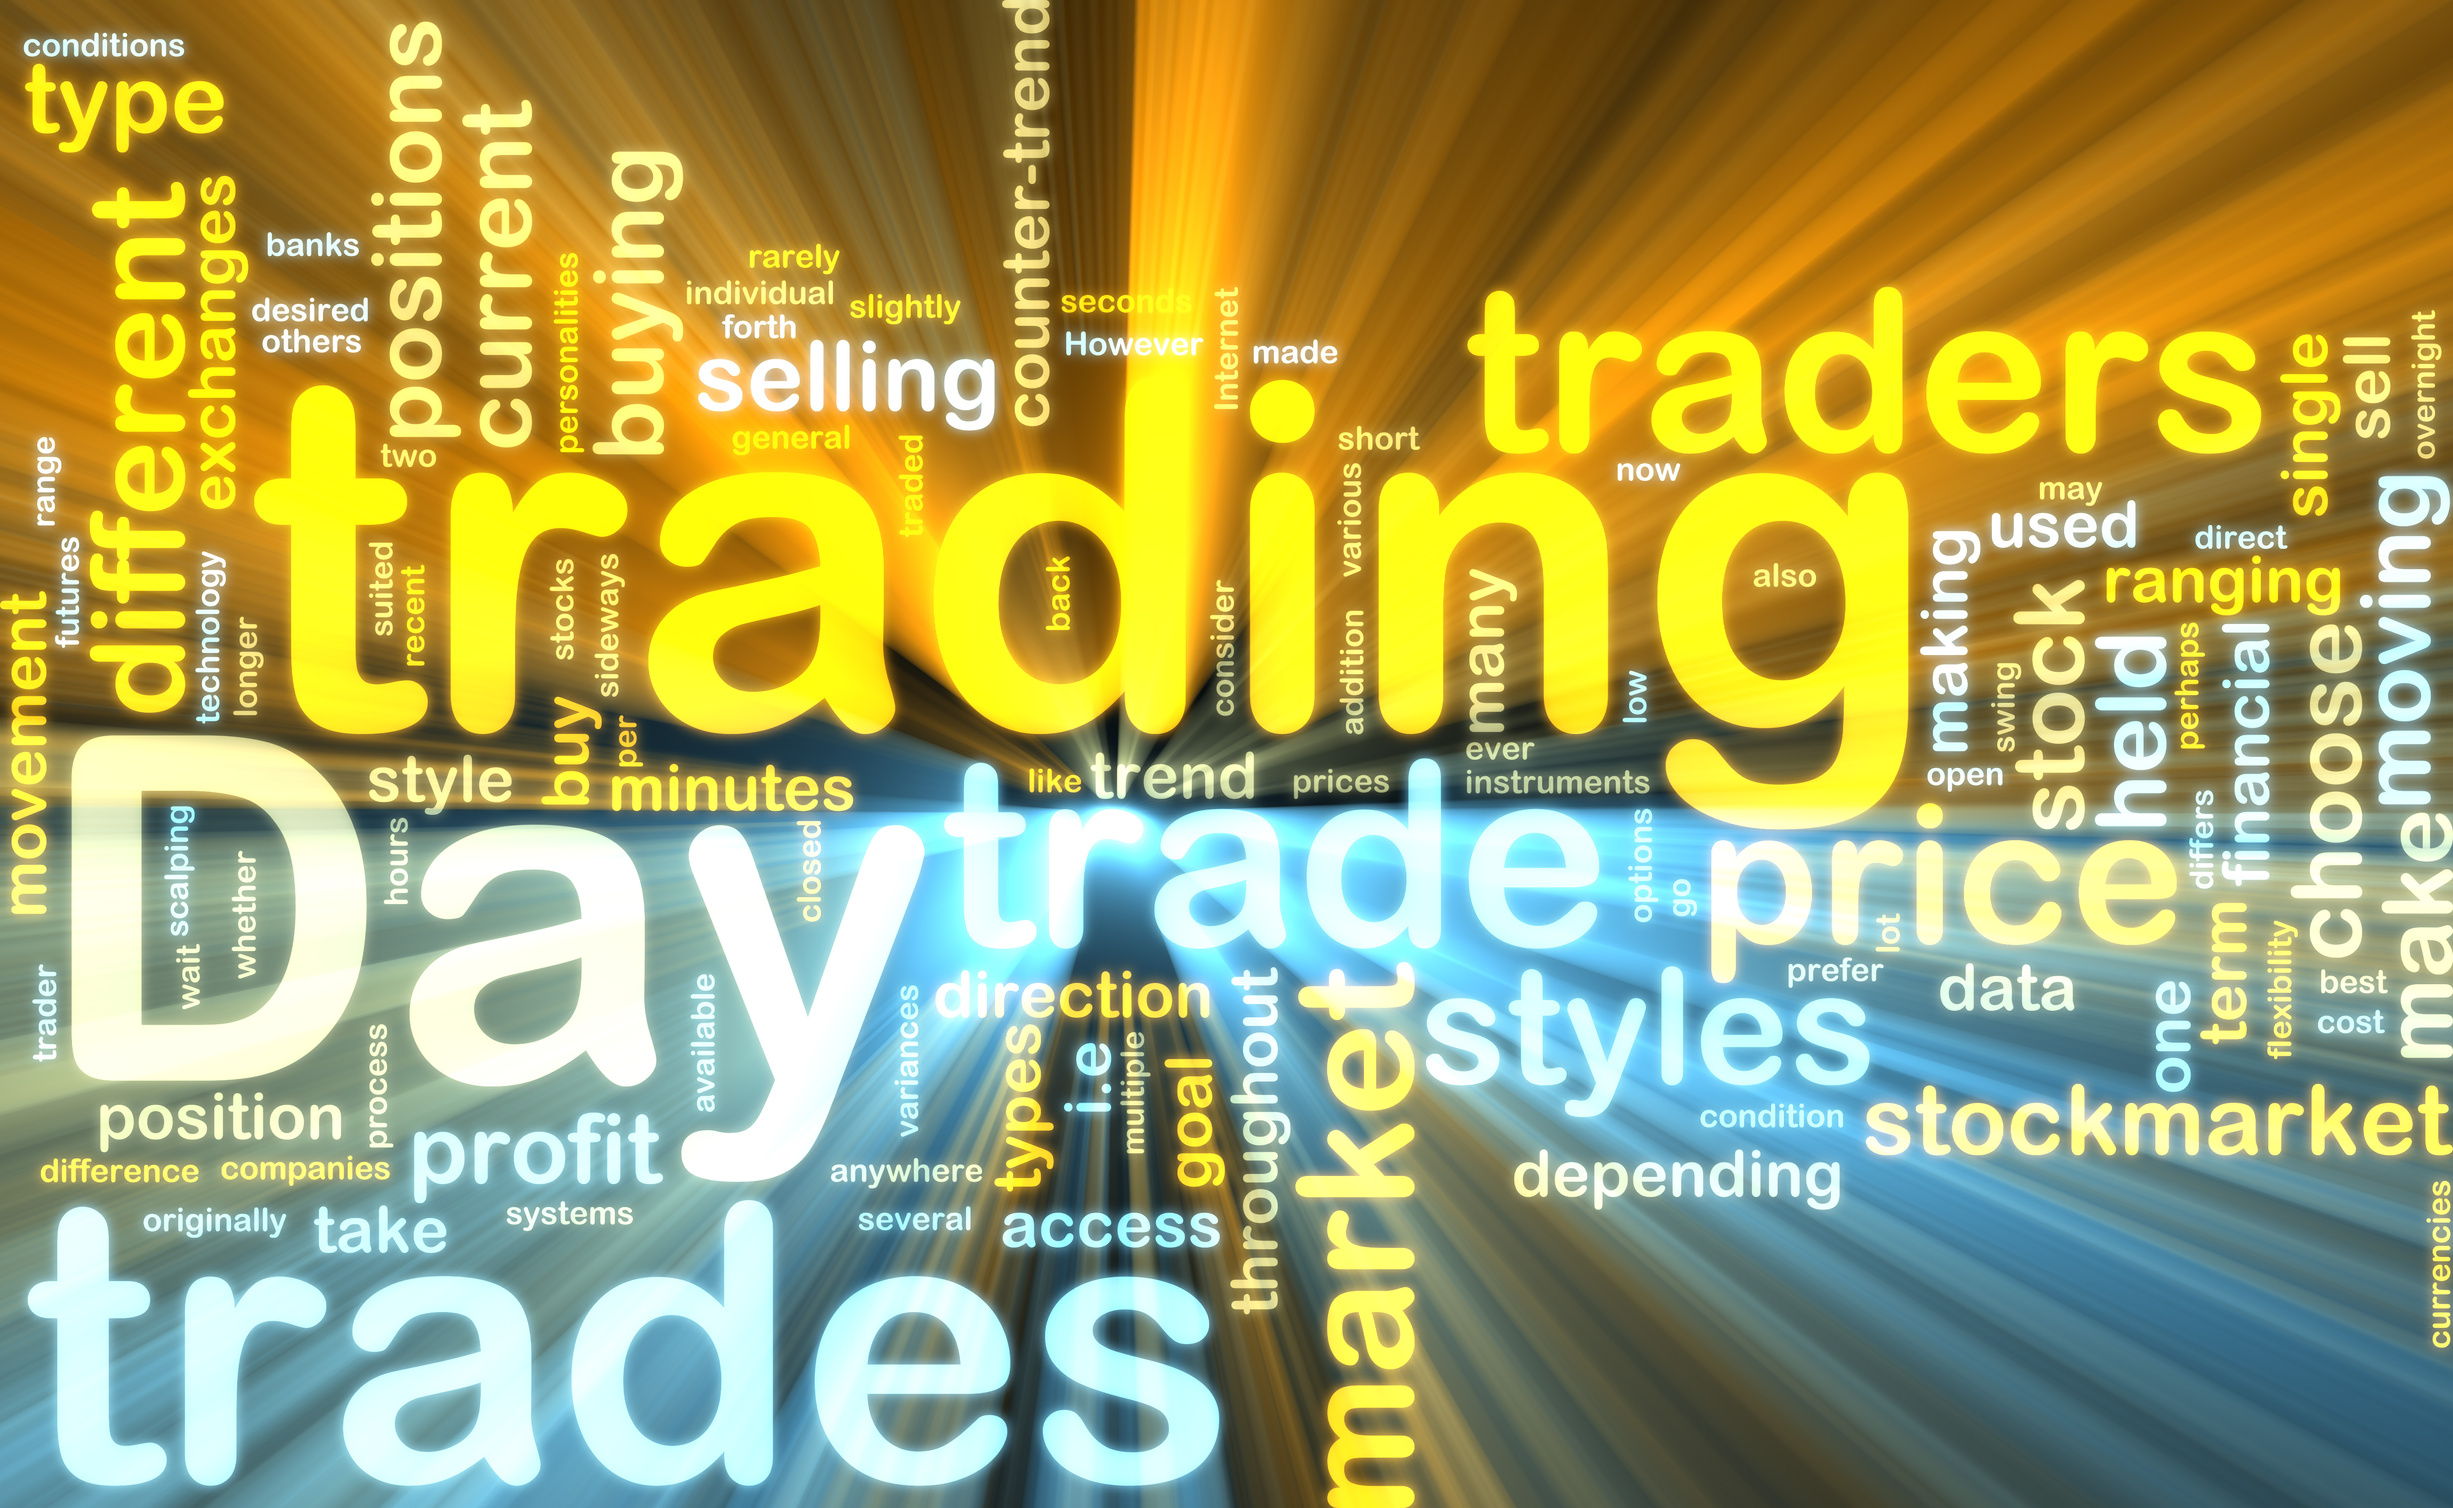 Trading by internet